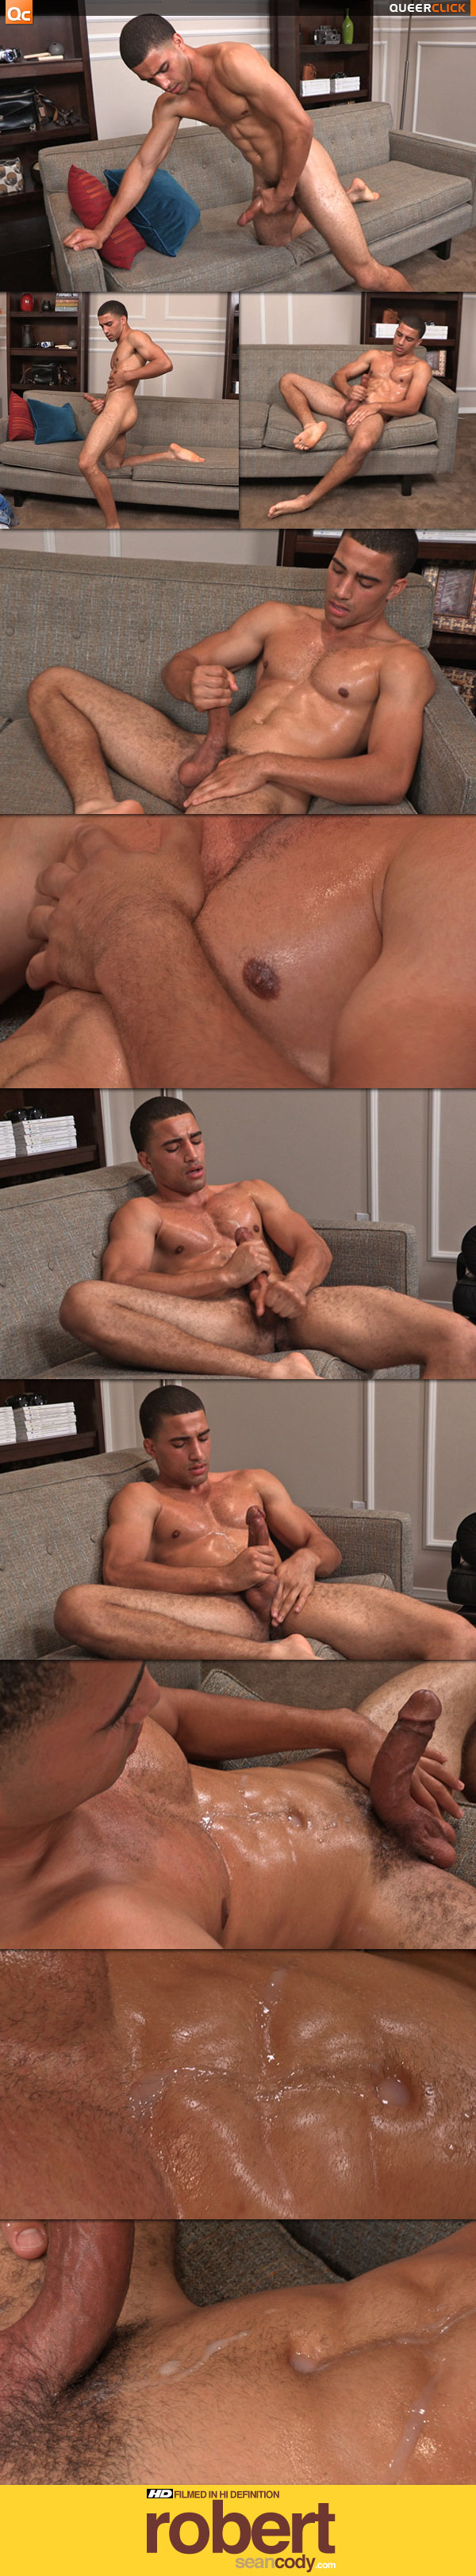 Sean Cody: Robert